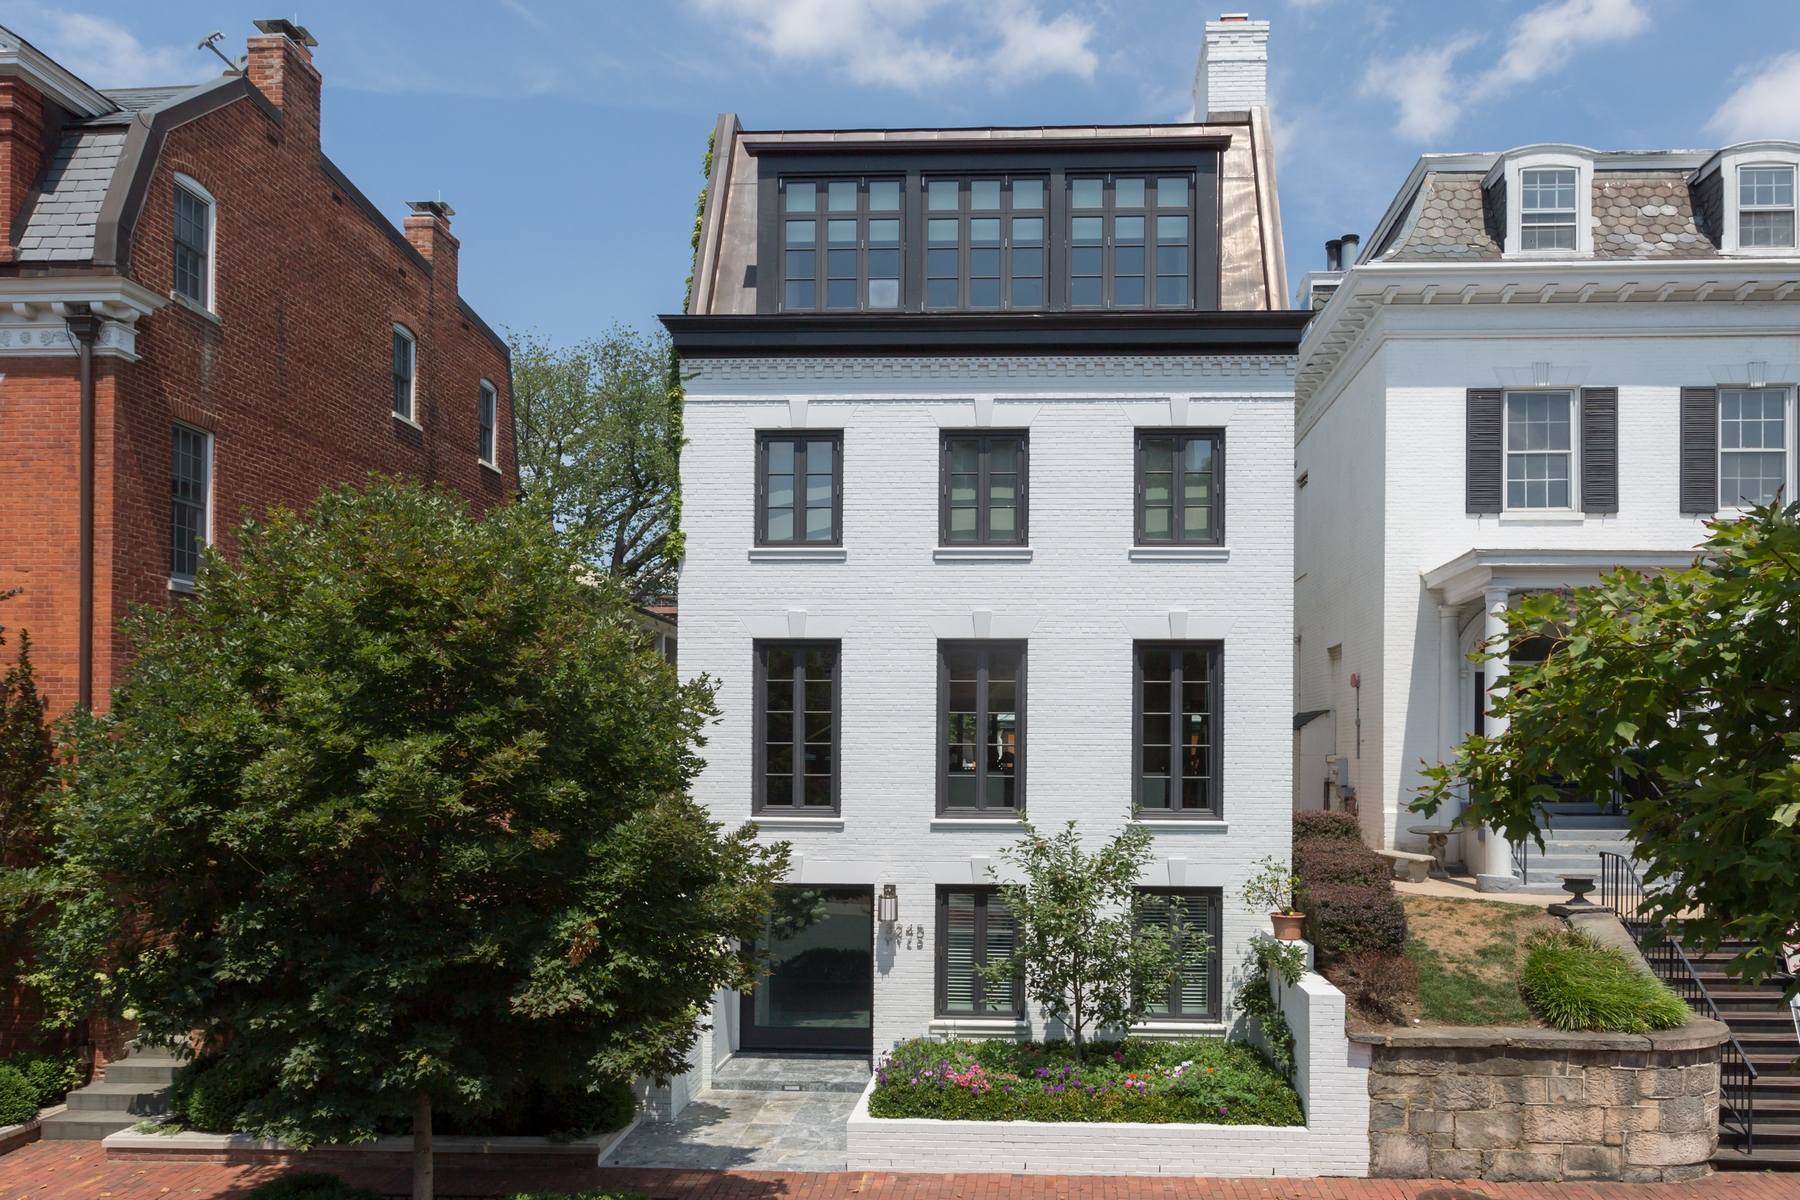 Single Family Home for Sale at Georgetown 3245 N Street NW Washington, District Of Columbia 20007 United States